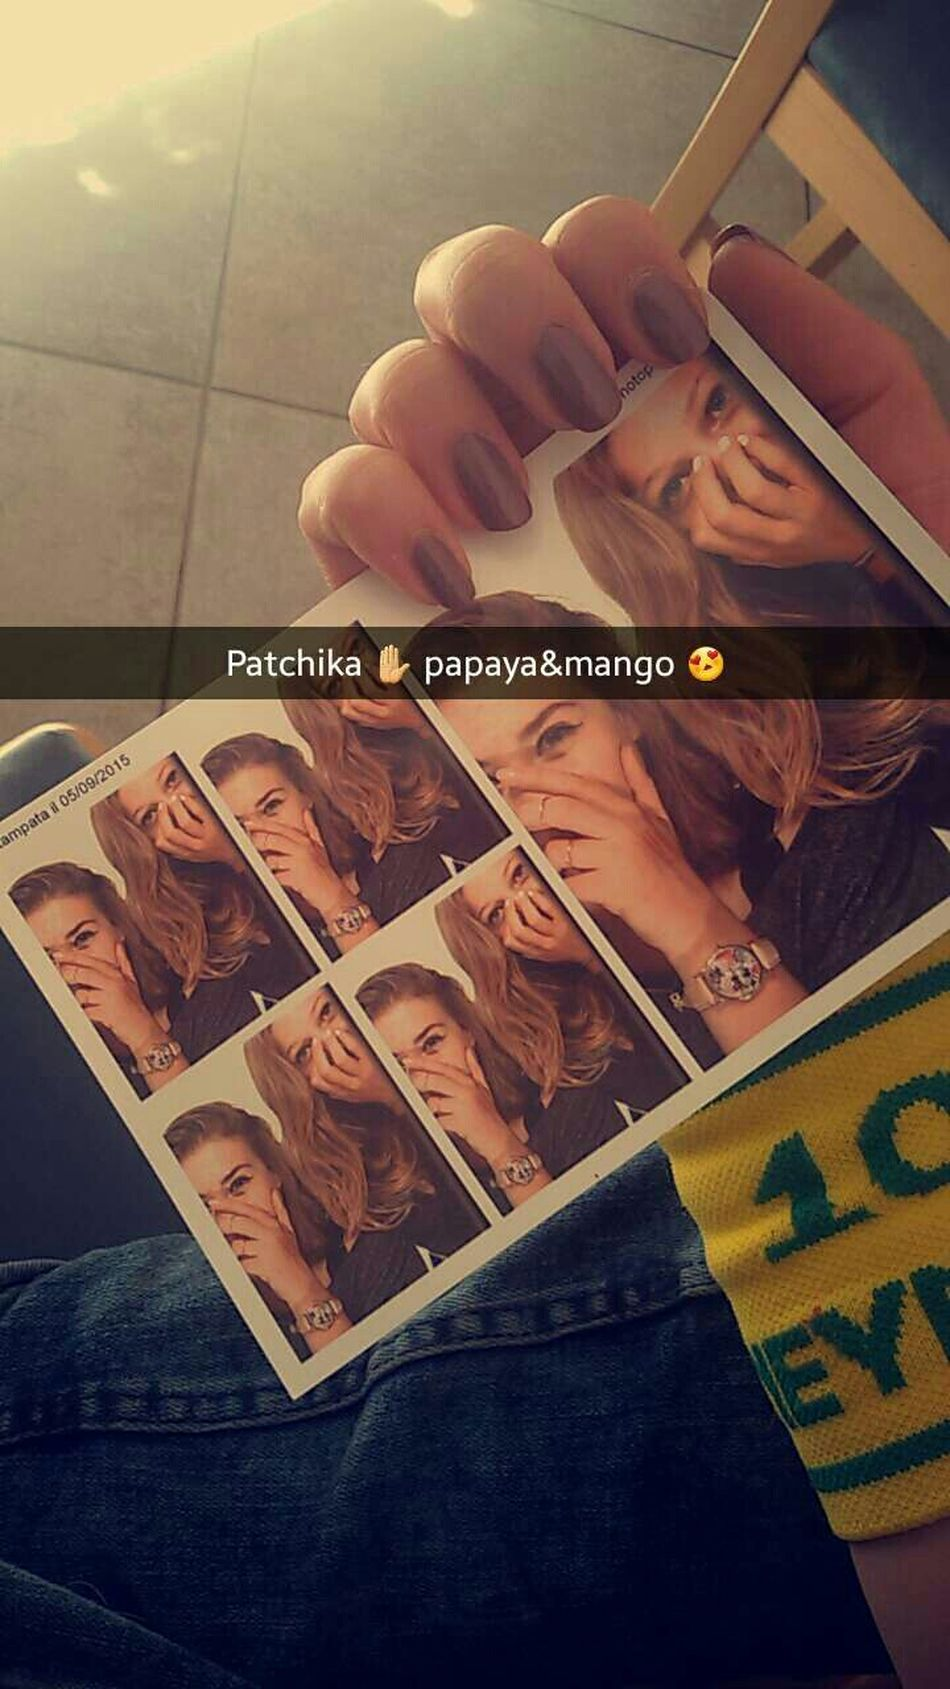 Patchika💖 Mango💙 Papaya 💚DREAMTEAM ❤ Babygirl 😍😍 Tiamopersempre💛 Magnifico 😻 Lastsummerdays💜 To Be With You 💕✊🔝